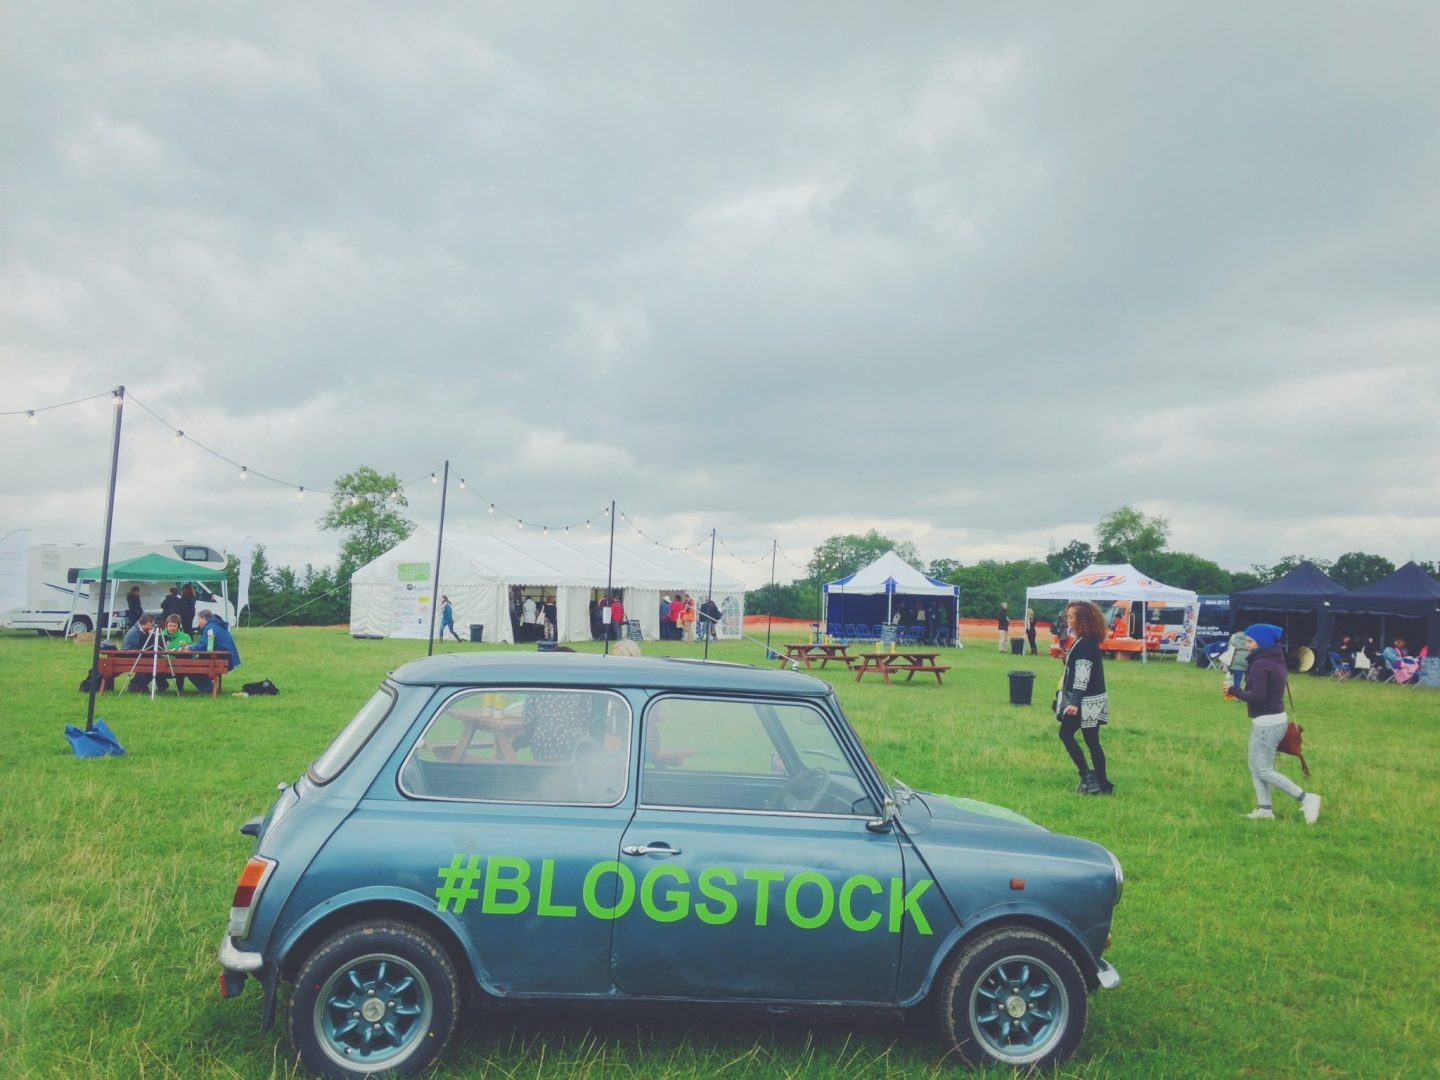 31 Lessons I learnt At BlogStock 2015